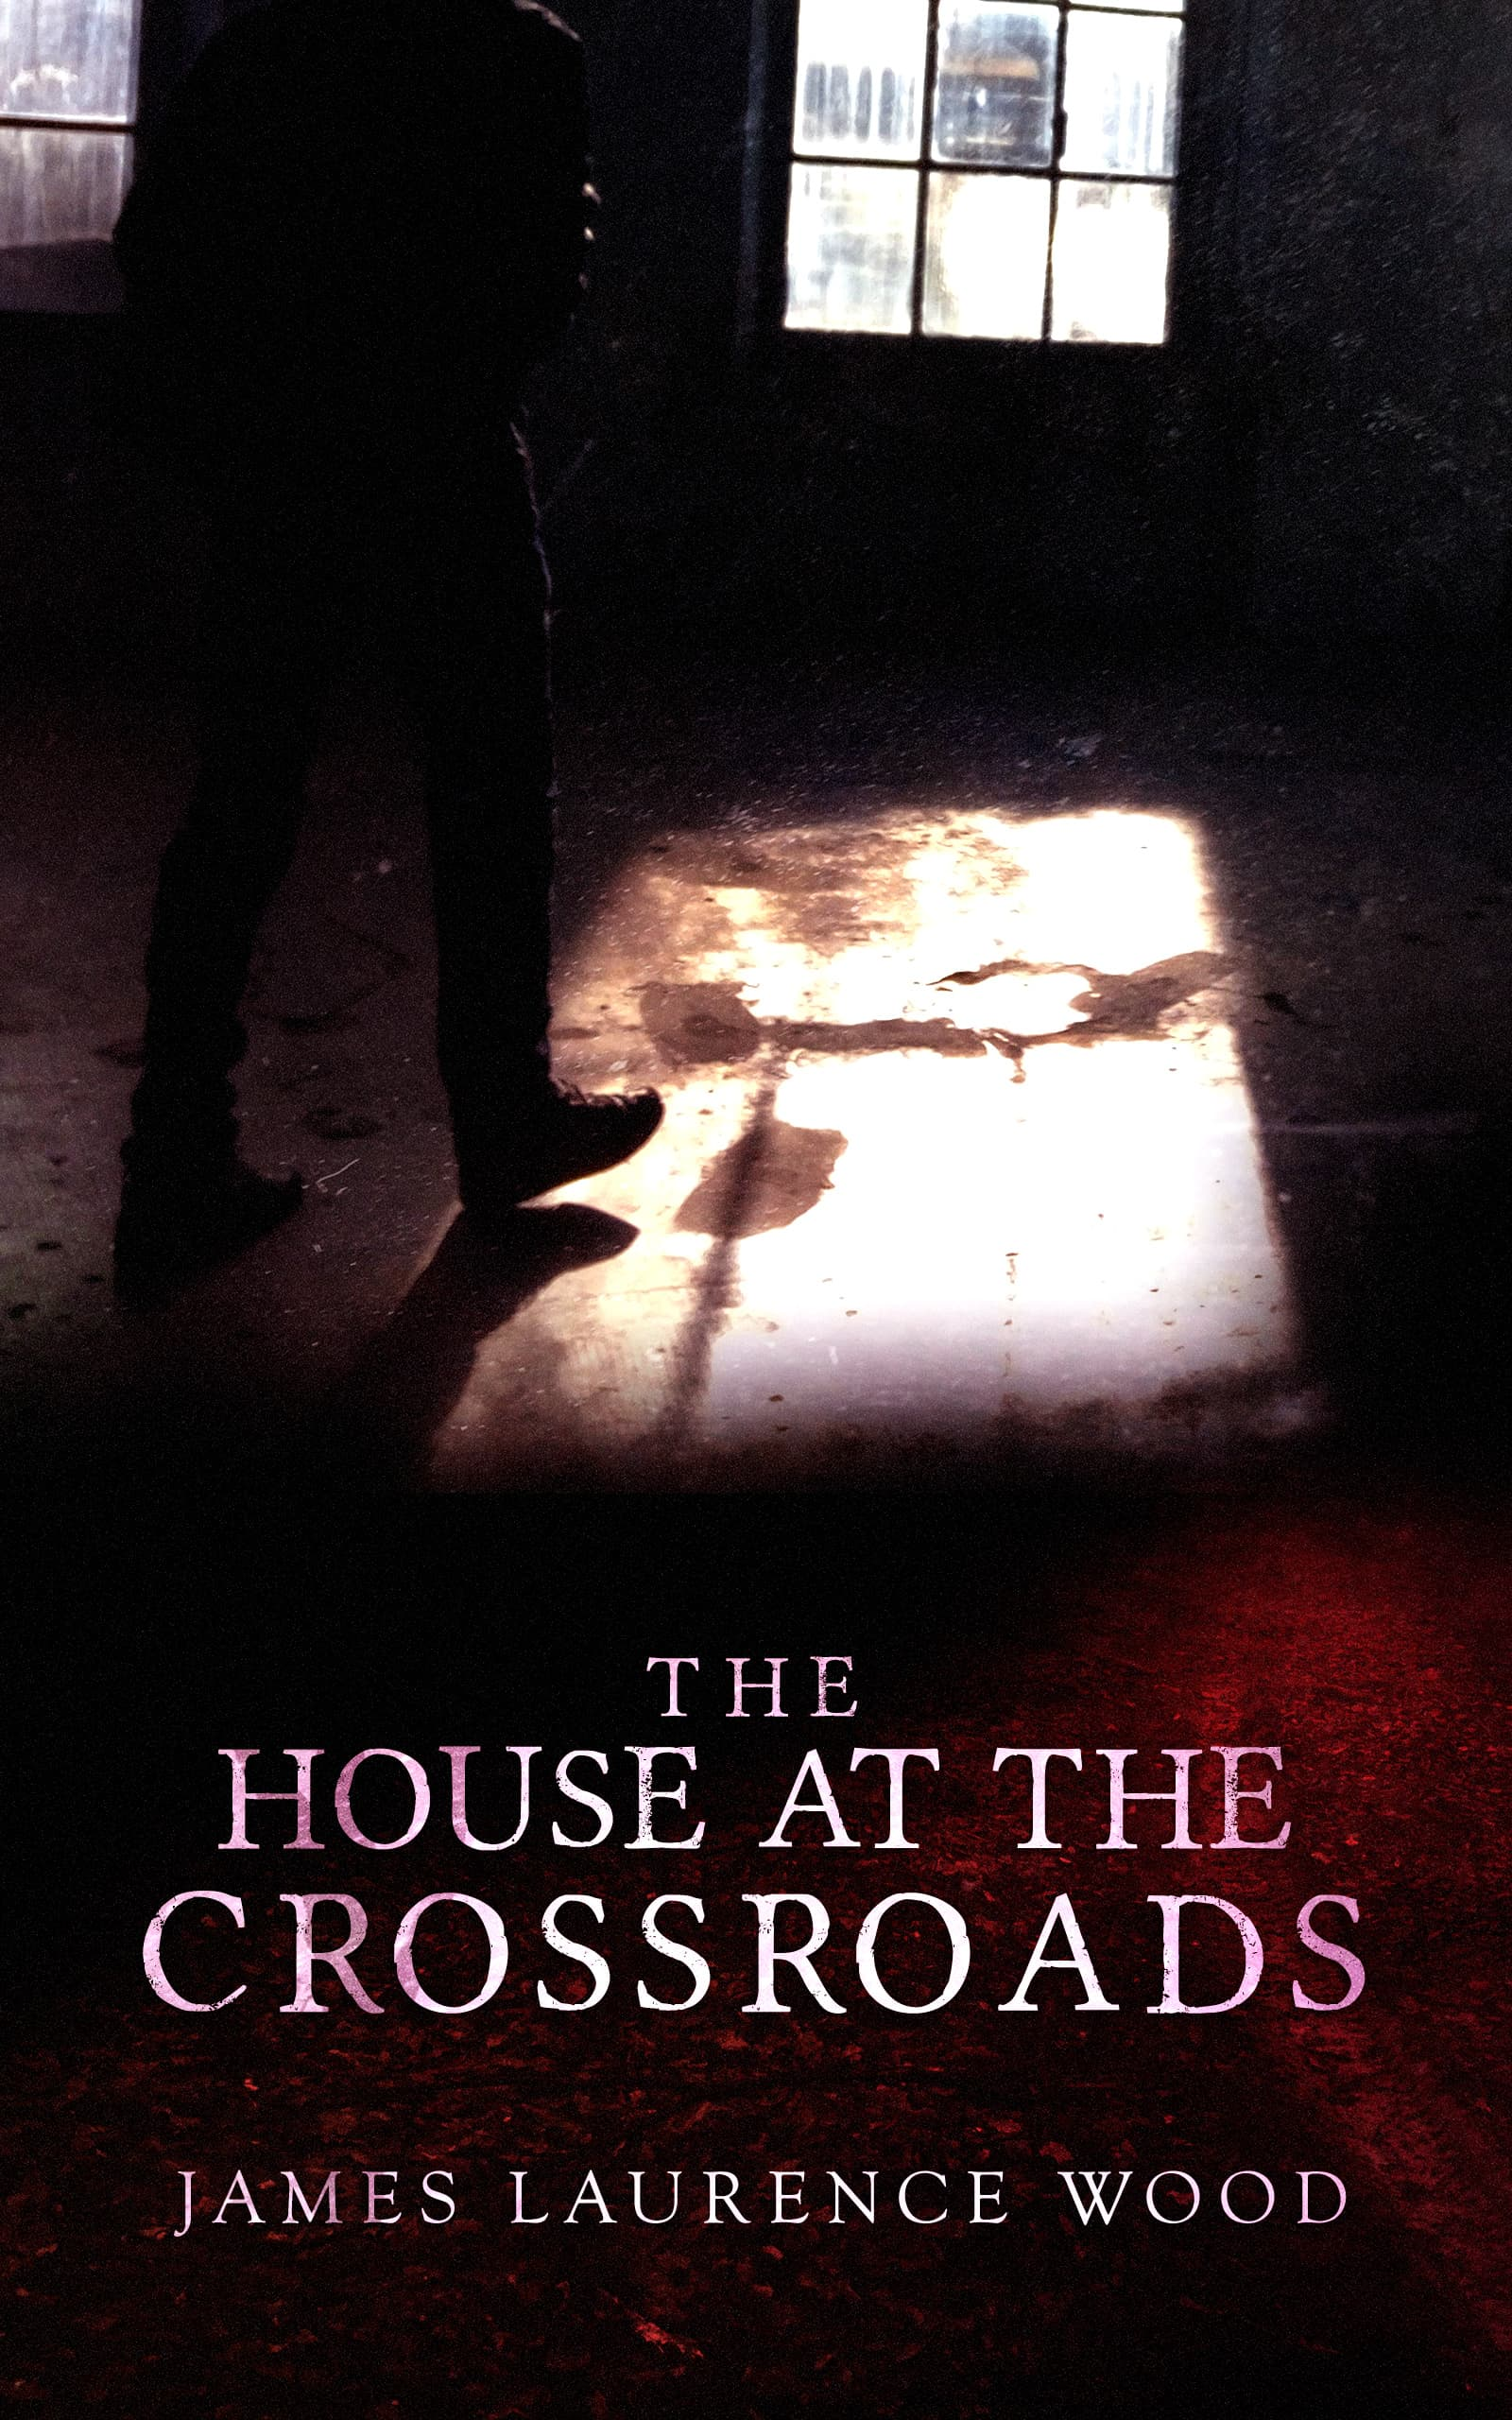 The House at the Crossroads